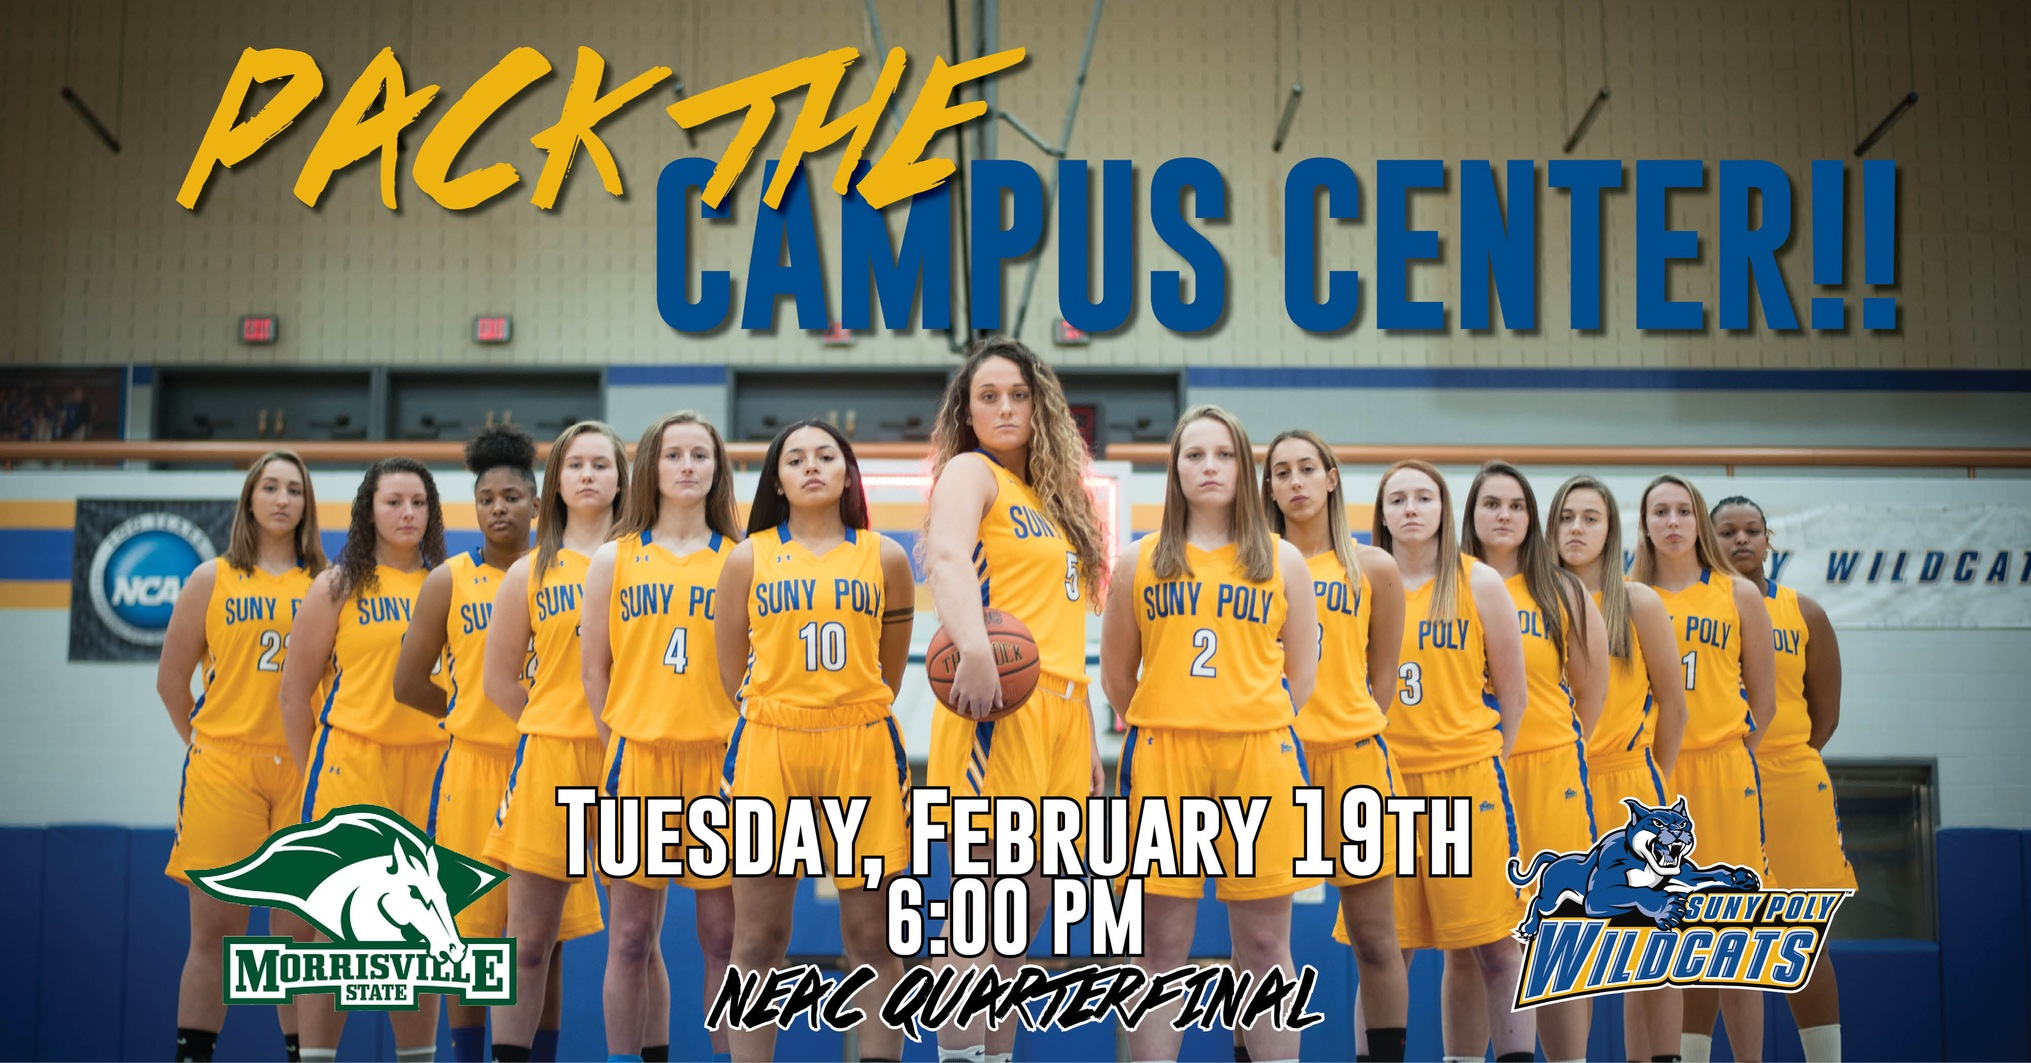 WBB: Wildcats to Host NEAC Quarterfinal Game on Tuesday Against Morrisville State.